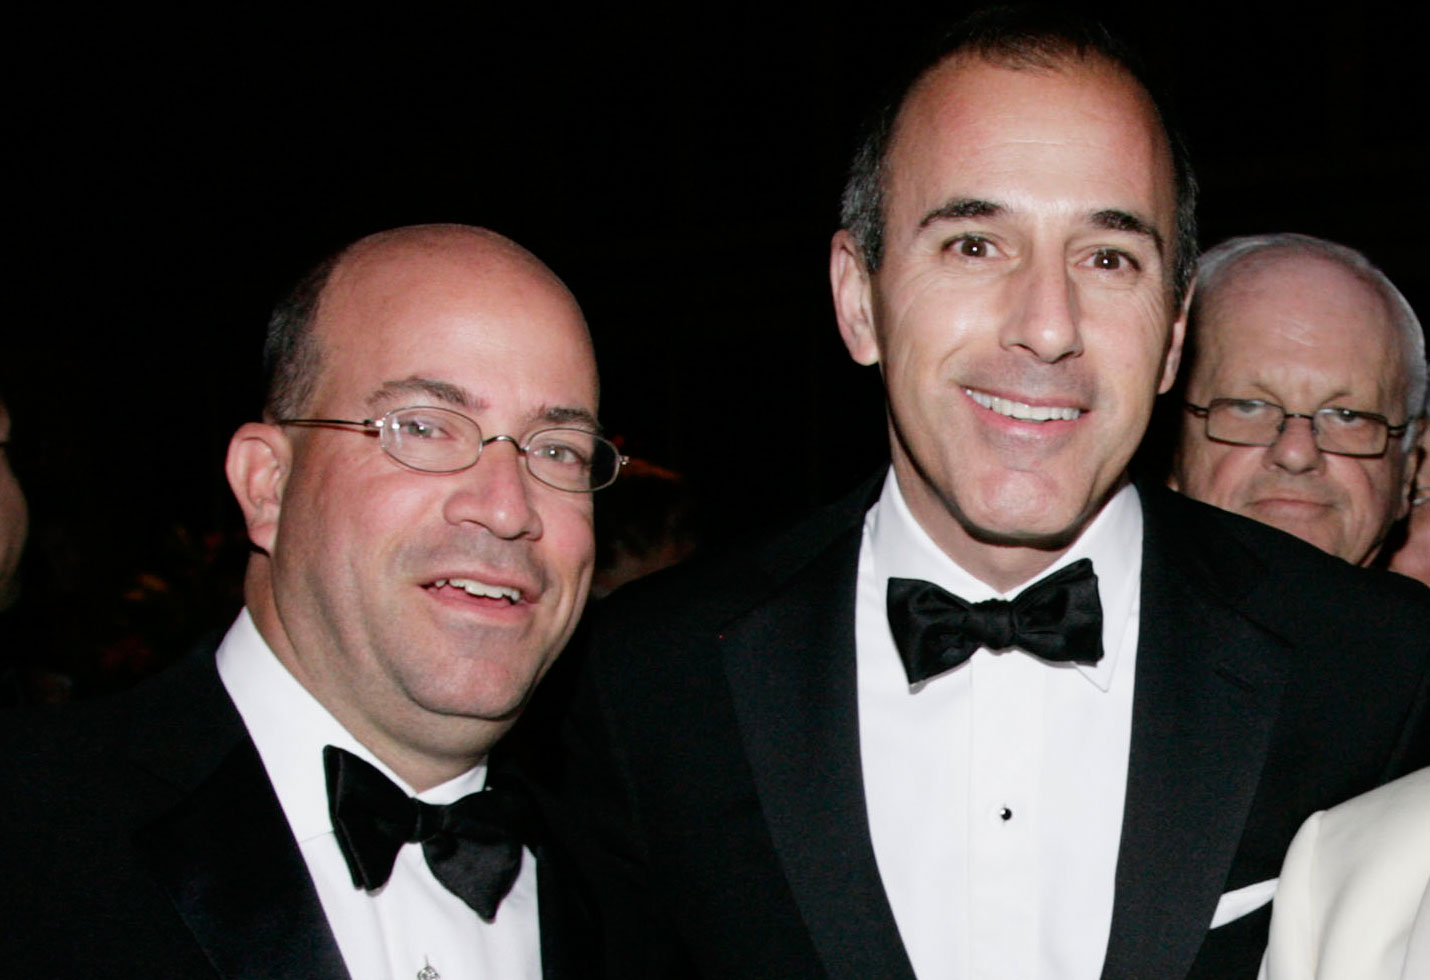 Matt lauer parties jeff zucker sexual misconduct metoo